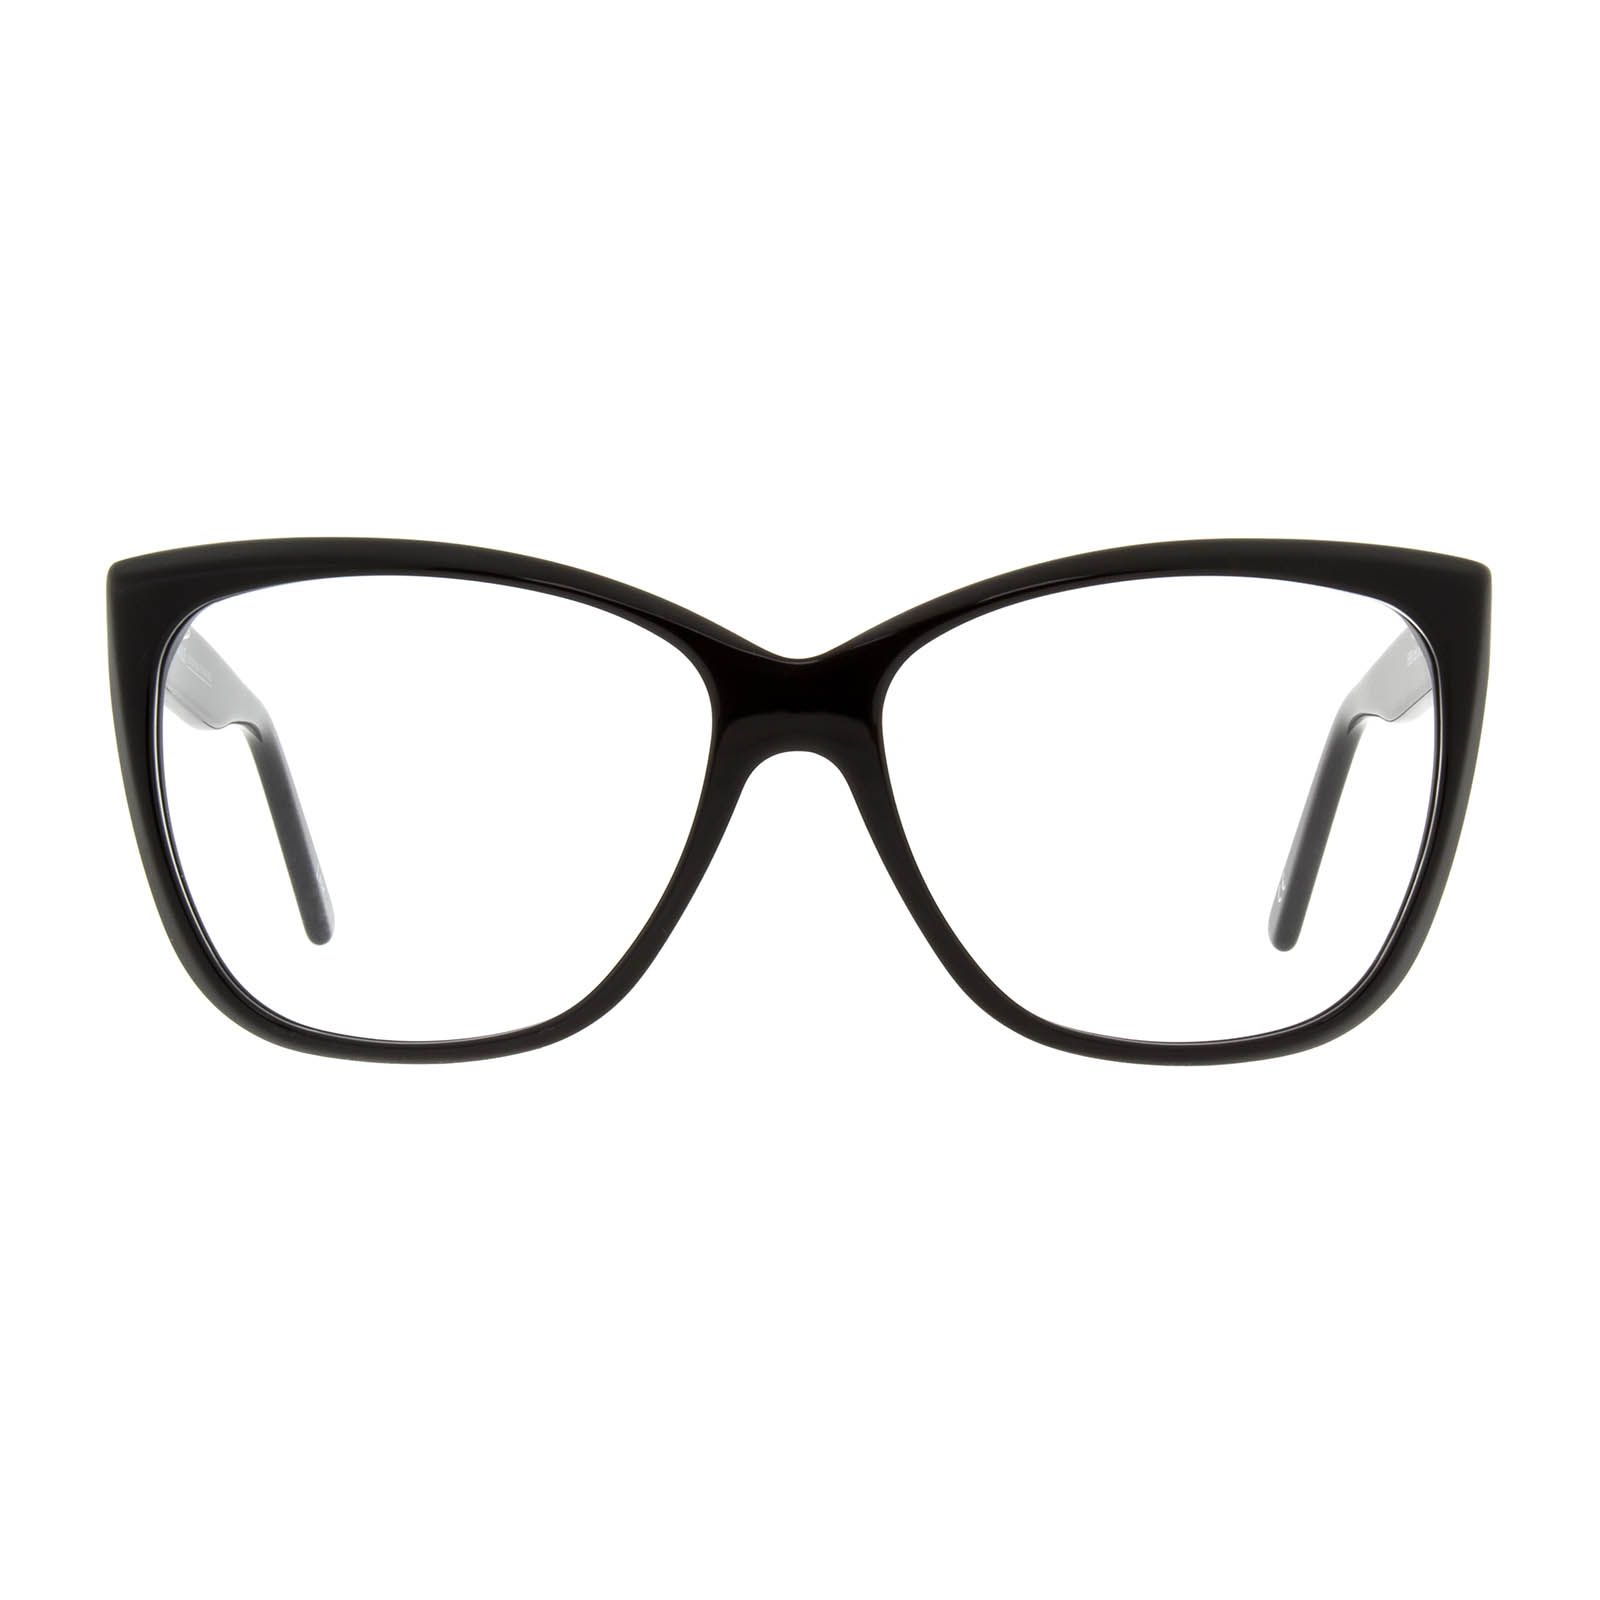 ANDY WOLF EYEWEAR_5090_A_front